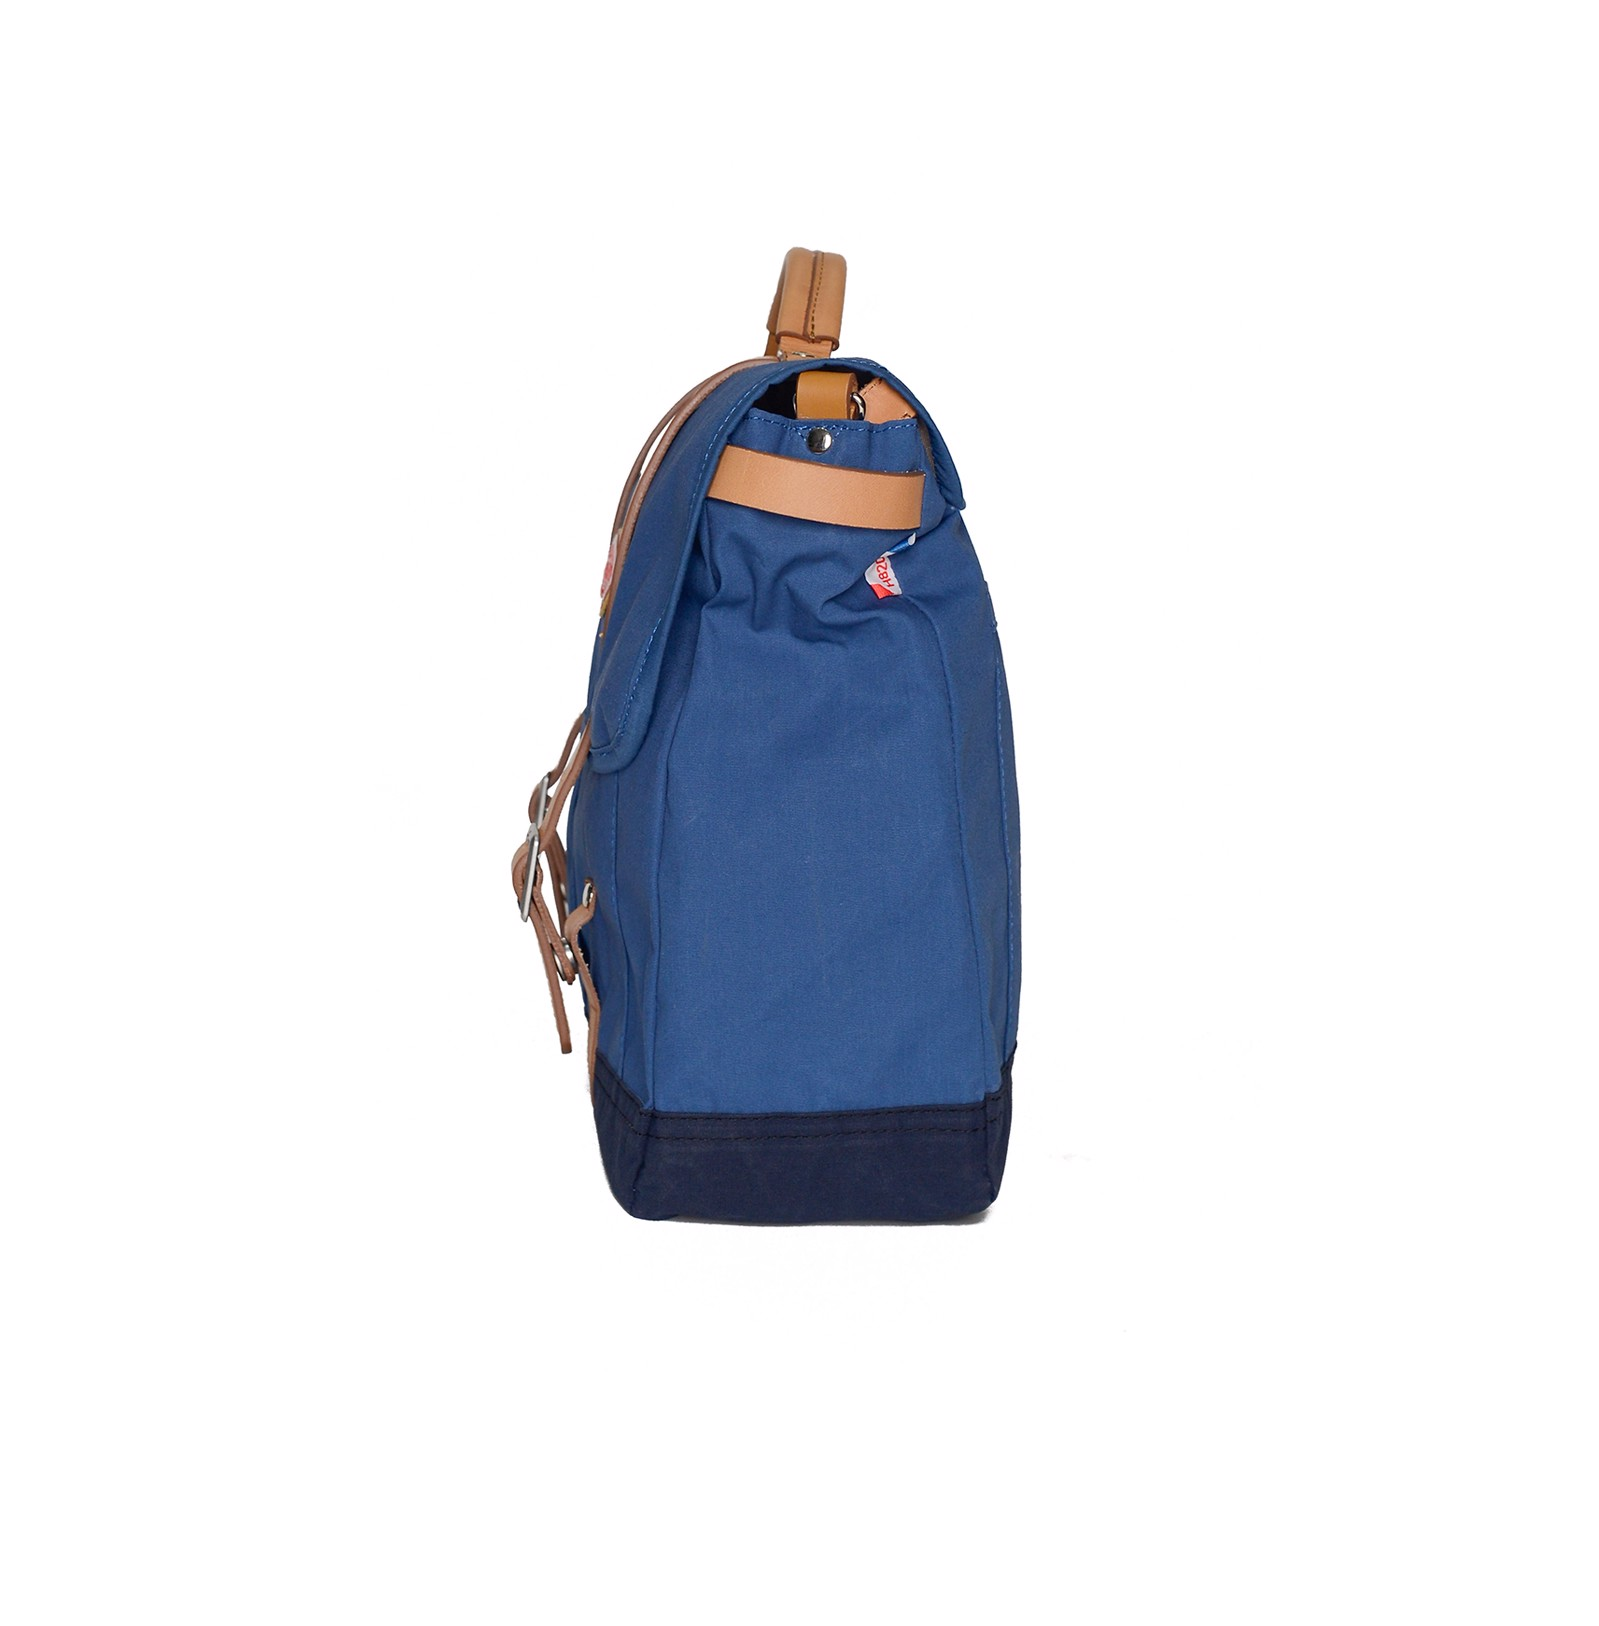 MAILMAN - BLUE/NAVY